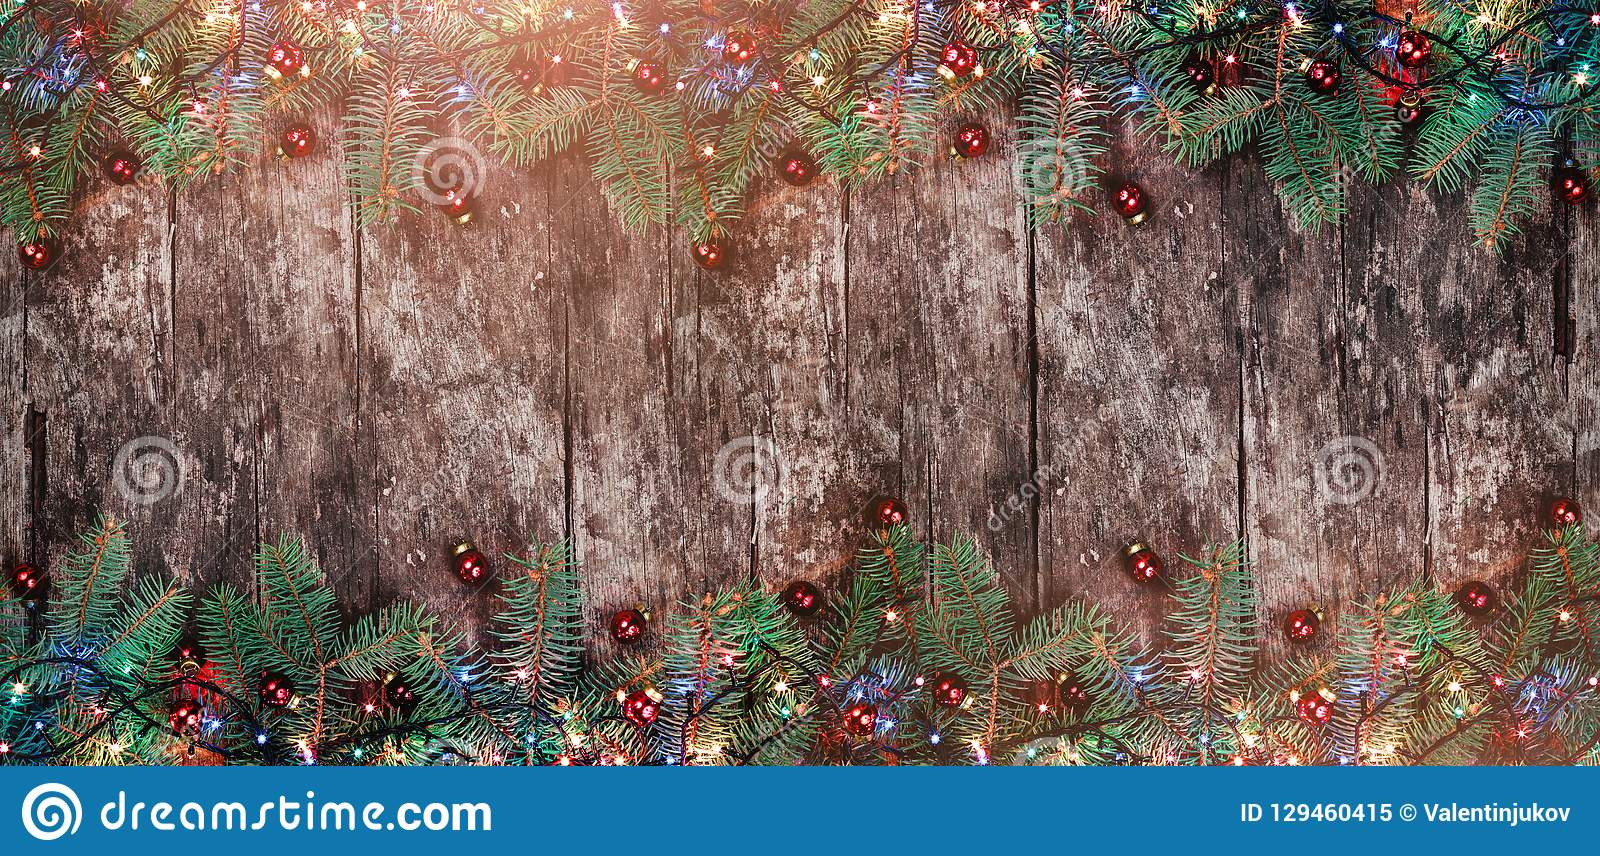 Christmas Fir branches with lights and red decorations on wooden background. Xmas and Happy New Year frame.